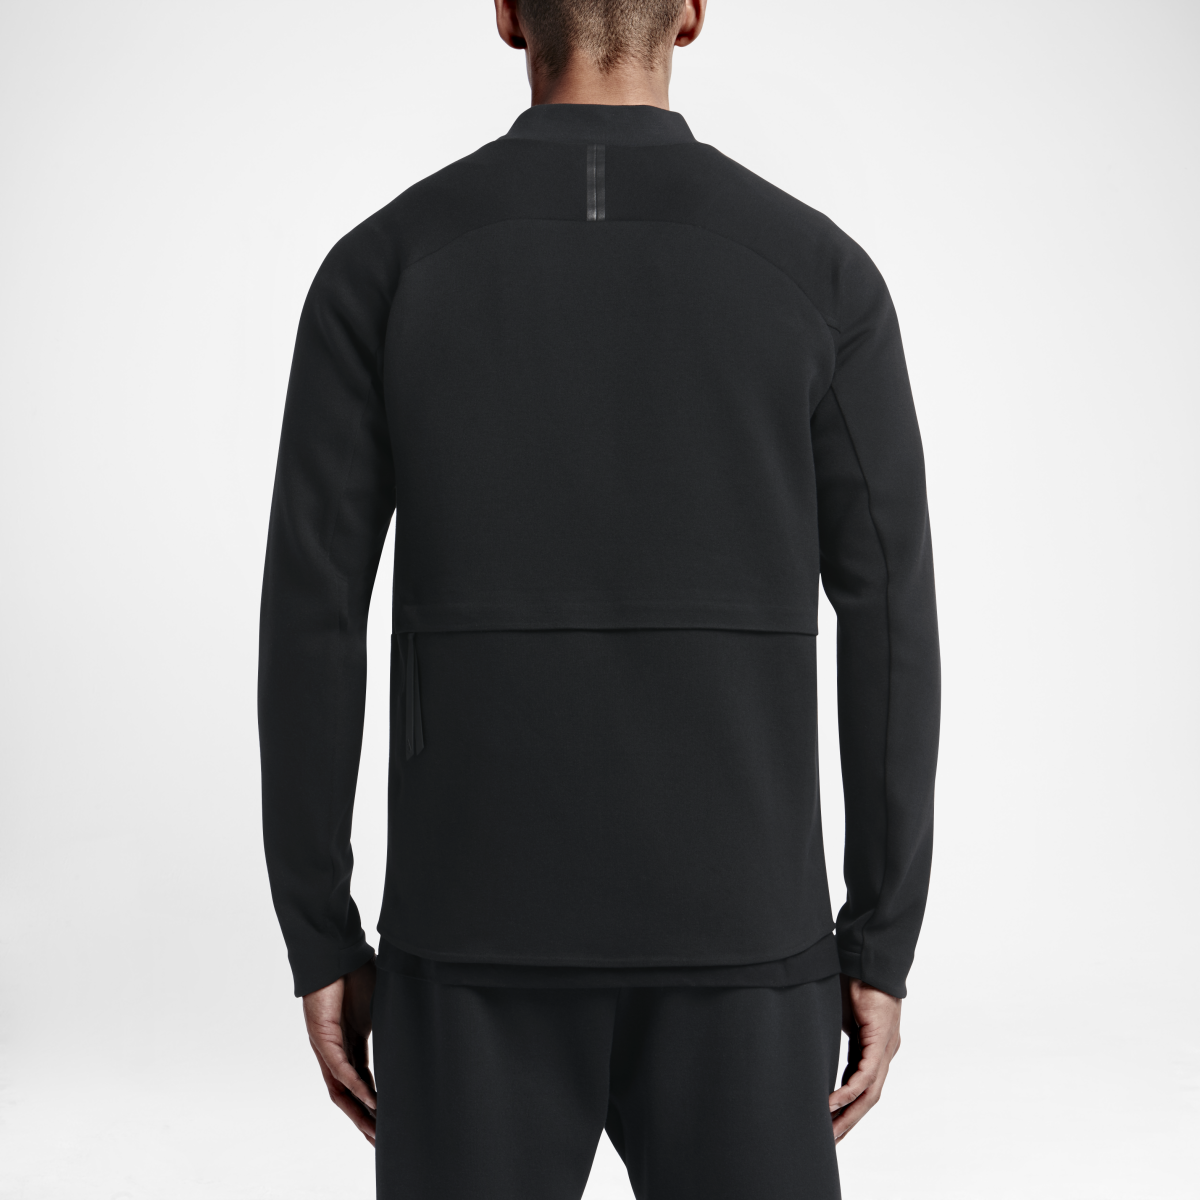 nikelab-transform-jacket-04.png